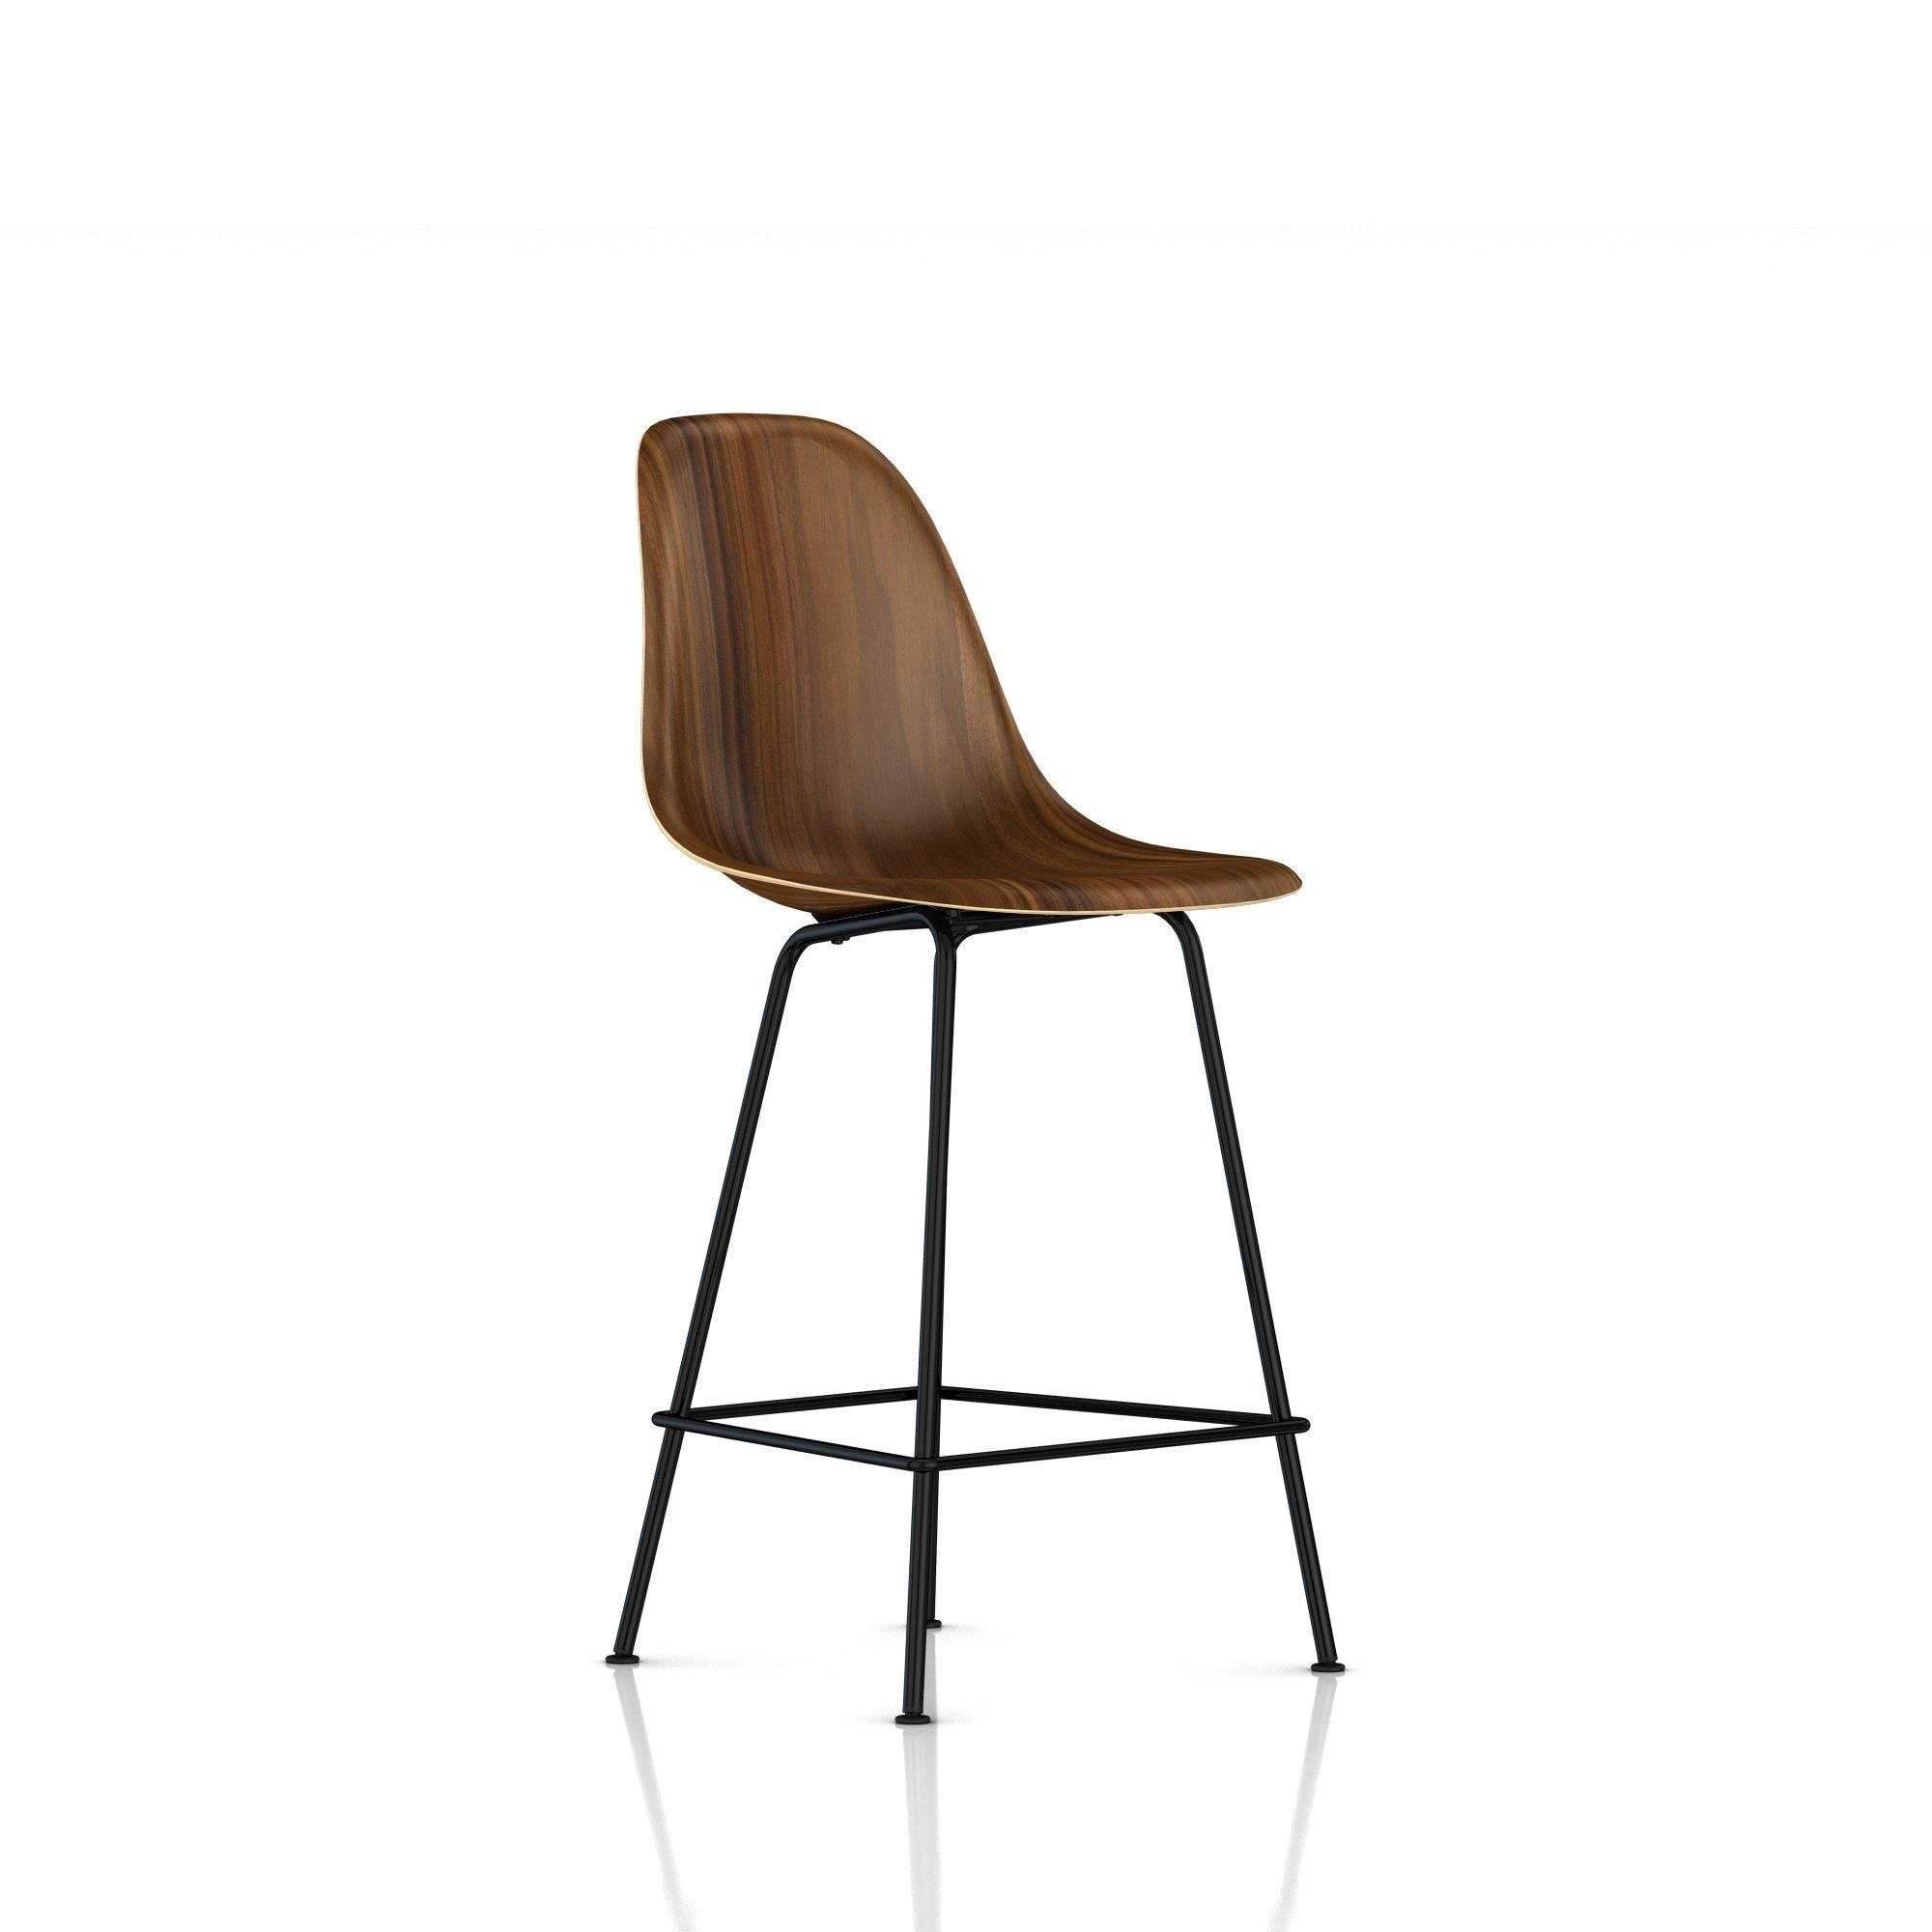 Phenomenal Eames Molded Wood Counter Stool Kitchen Remodel Ideas Machost Co Dining Chair Design Ideas Machostcouk